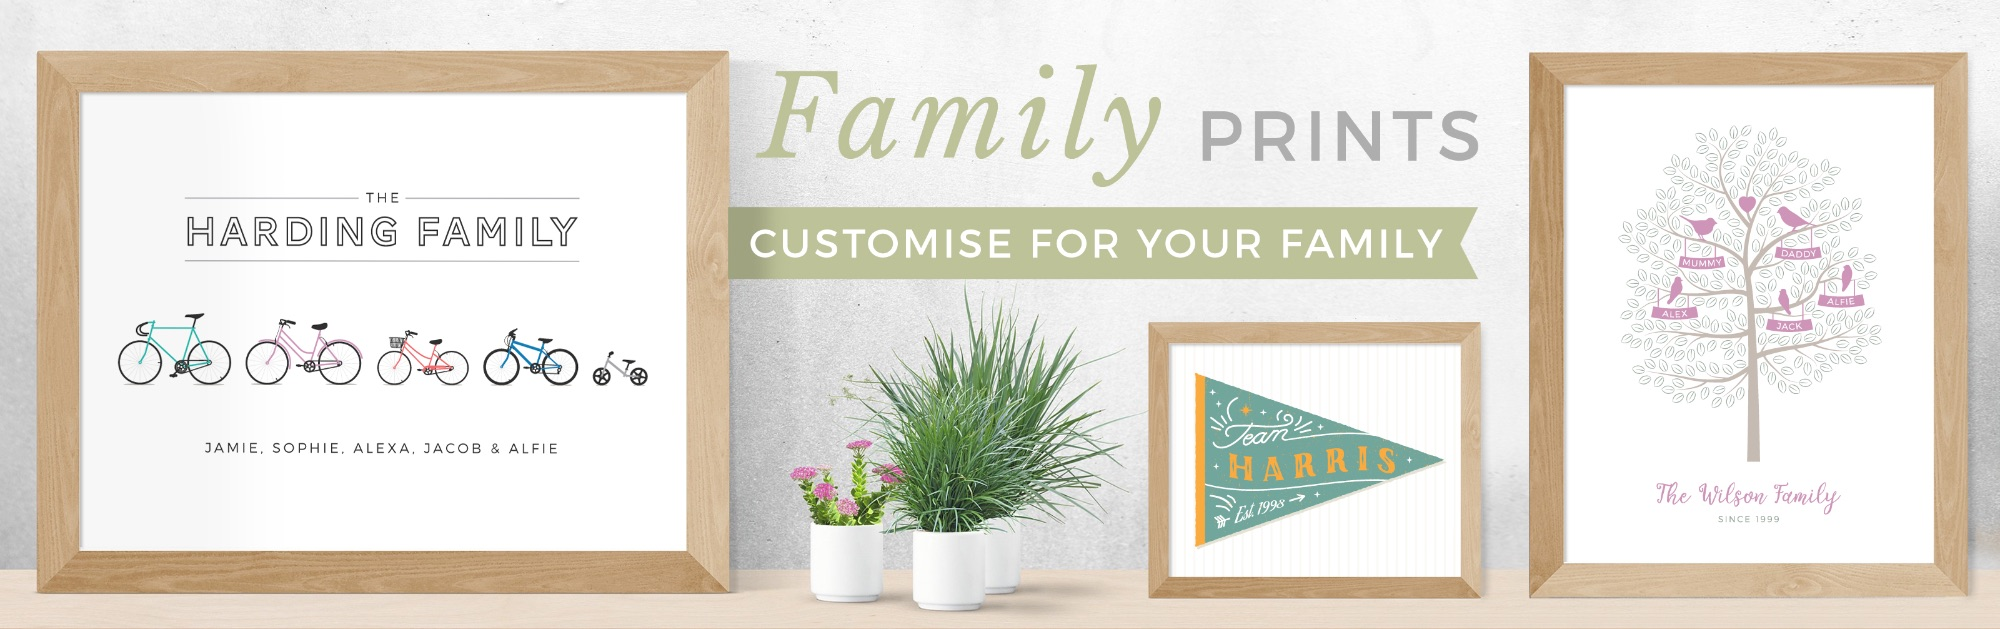 FamilyPrints